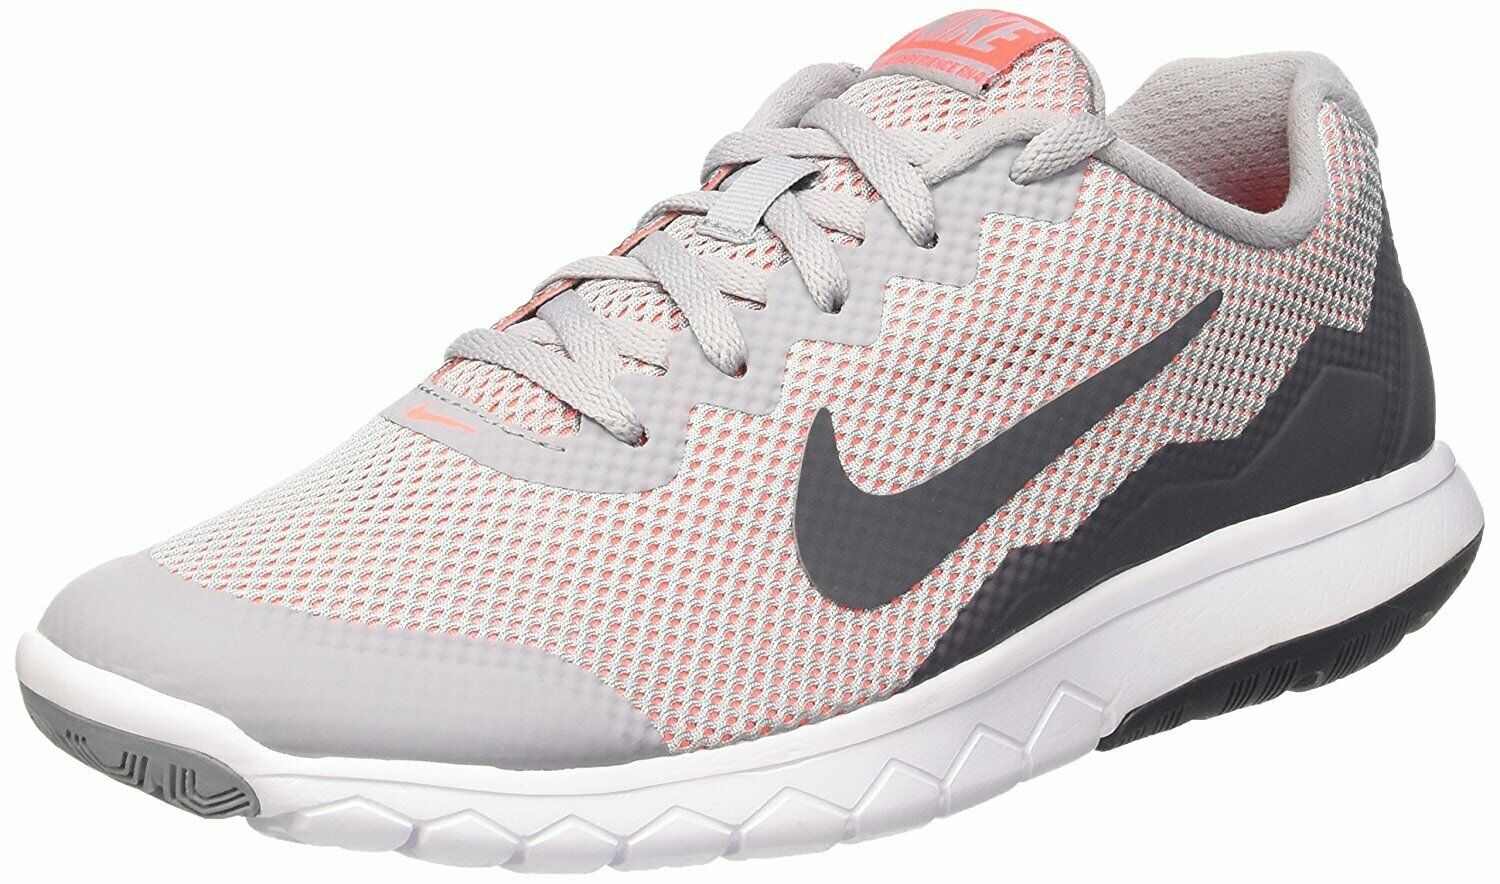 Nike Men's Flex Experience RN (Grey) Running shoes, 8 B(M) US